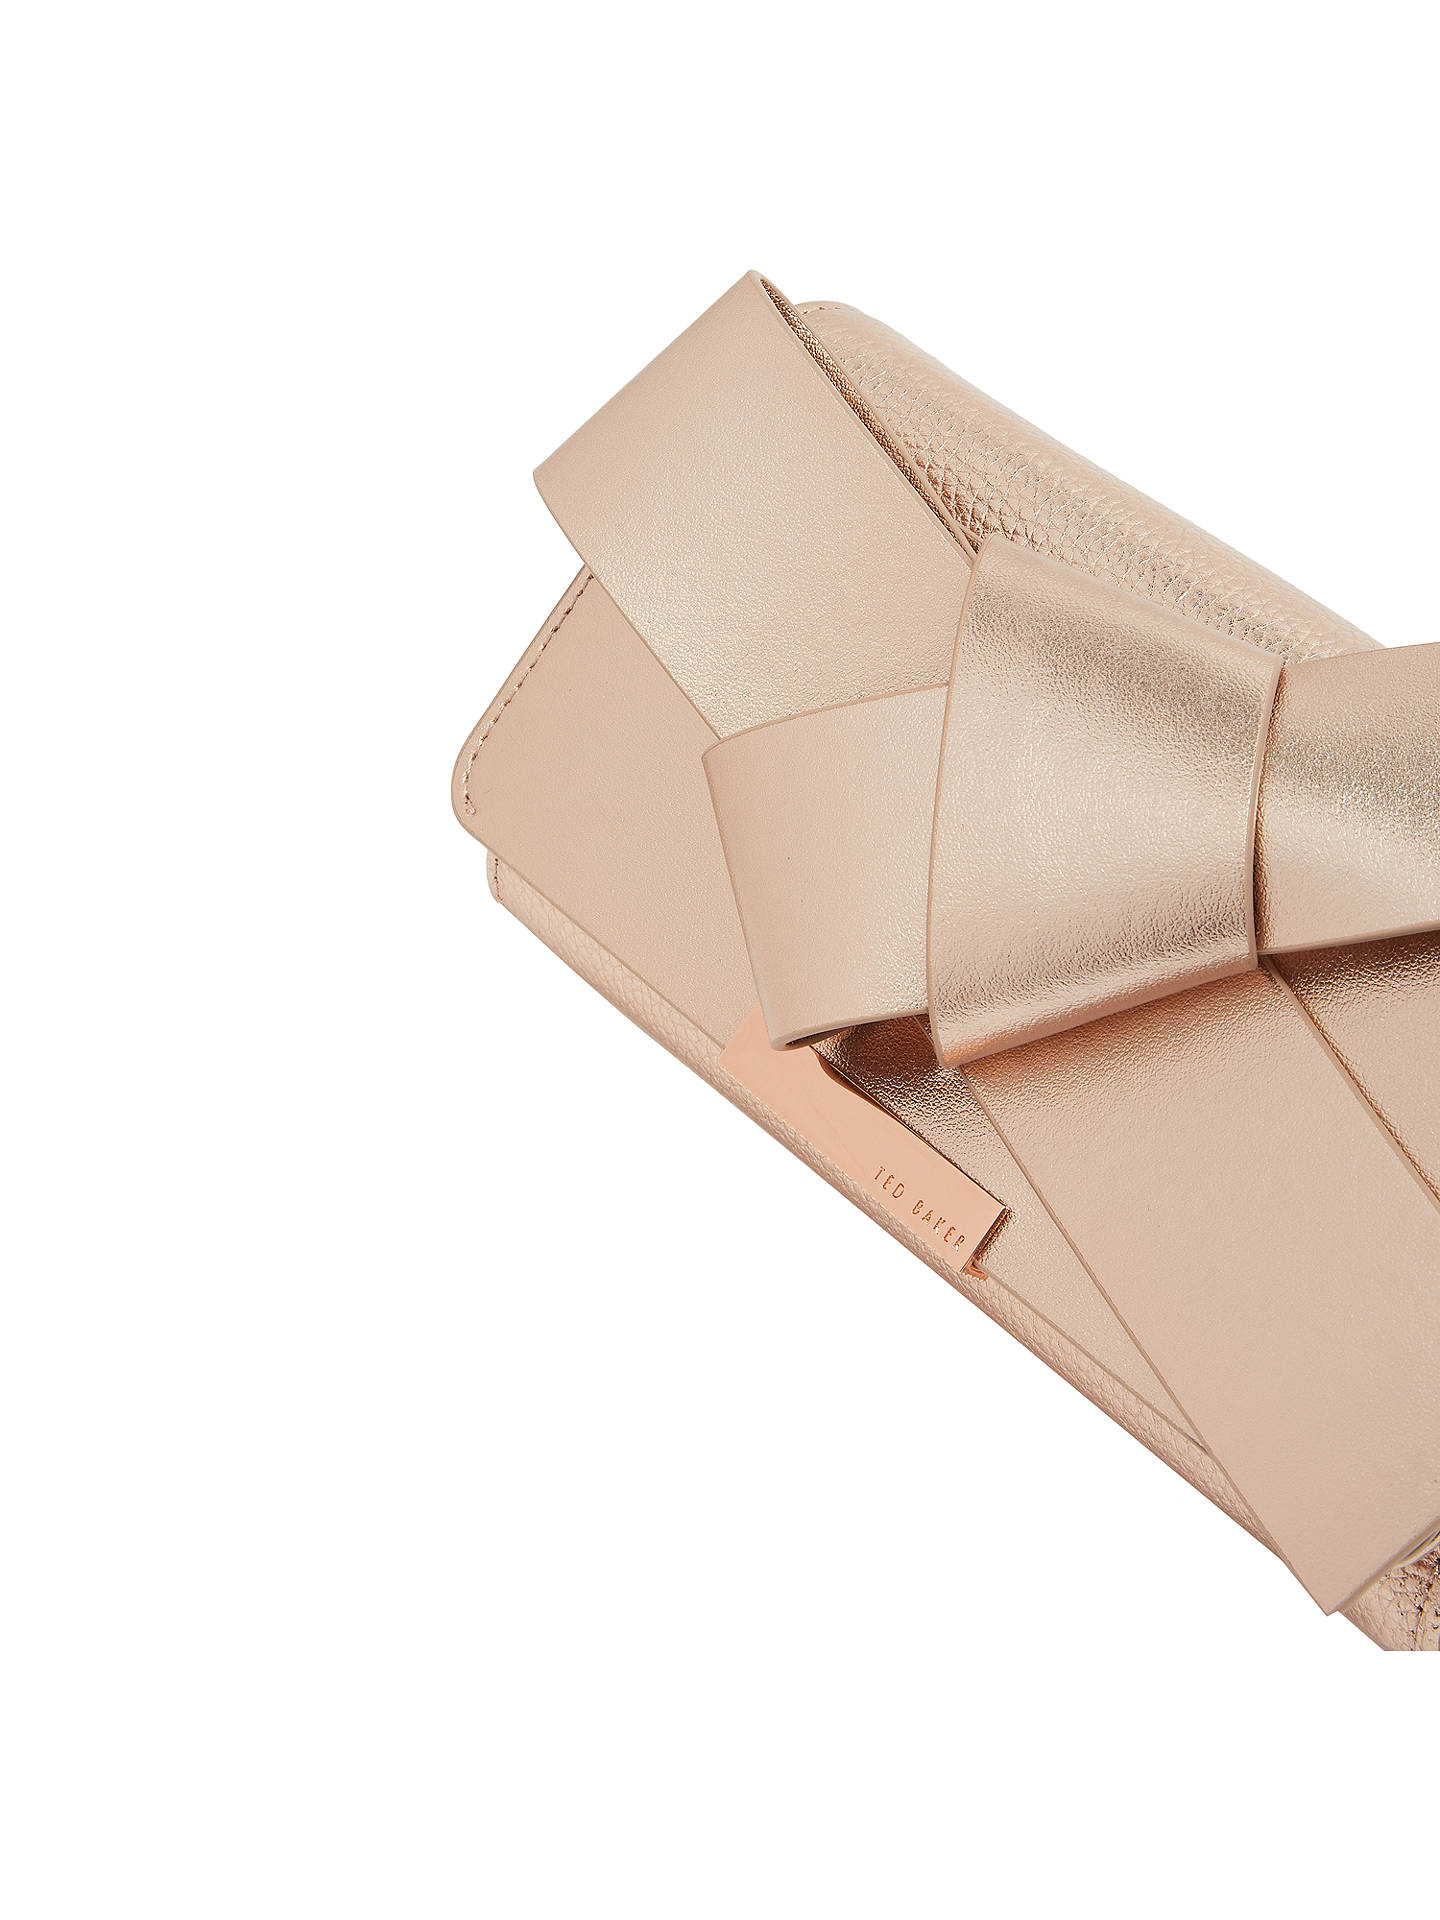 fb389b37d0c246 Ted Baker Lyle Giant Knot Bow Leather Evening Bag at John Lewis ...